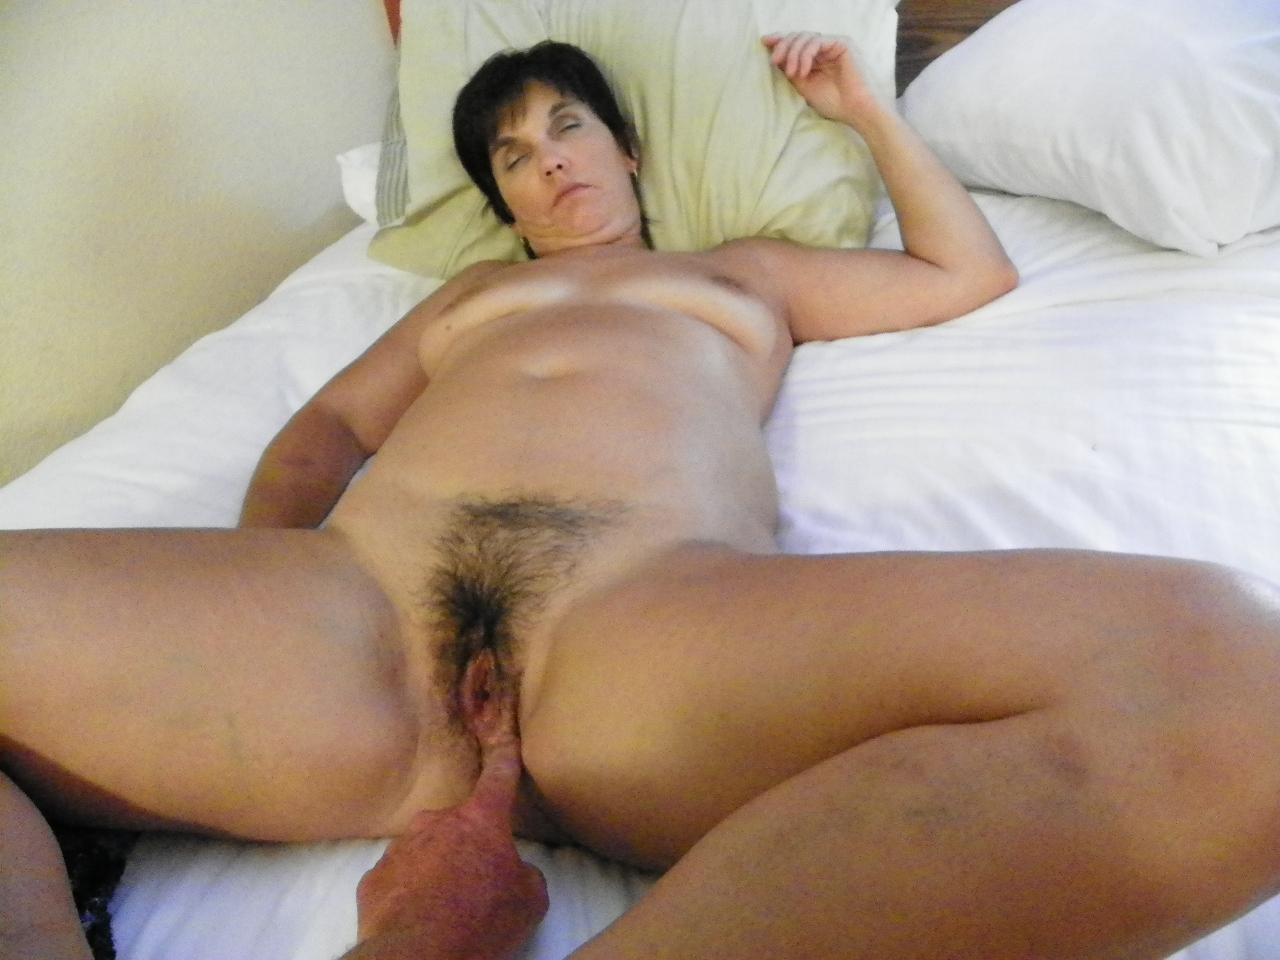 Exposed wife porn